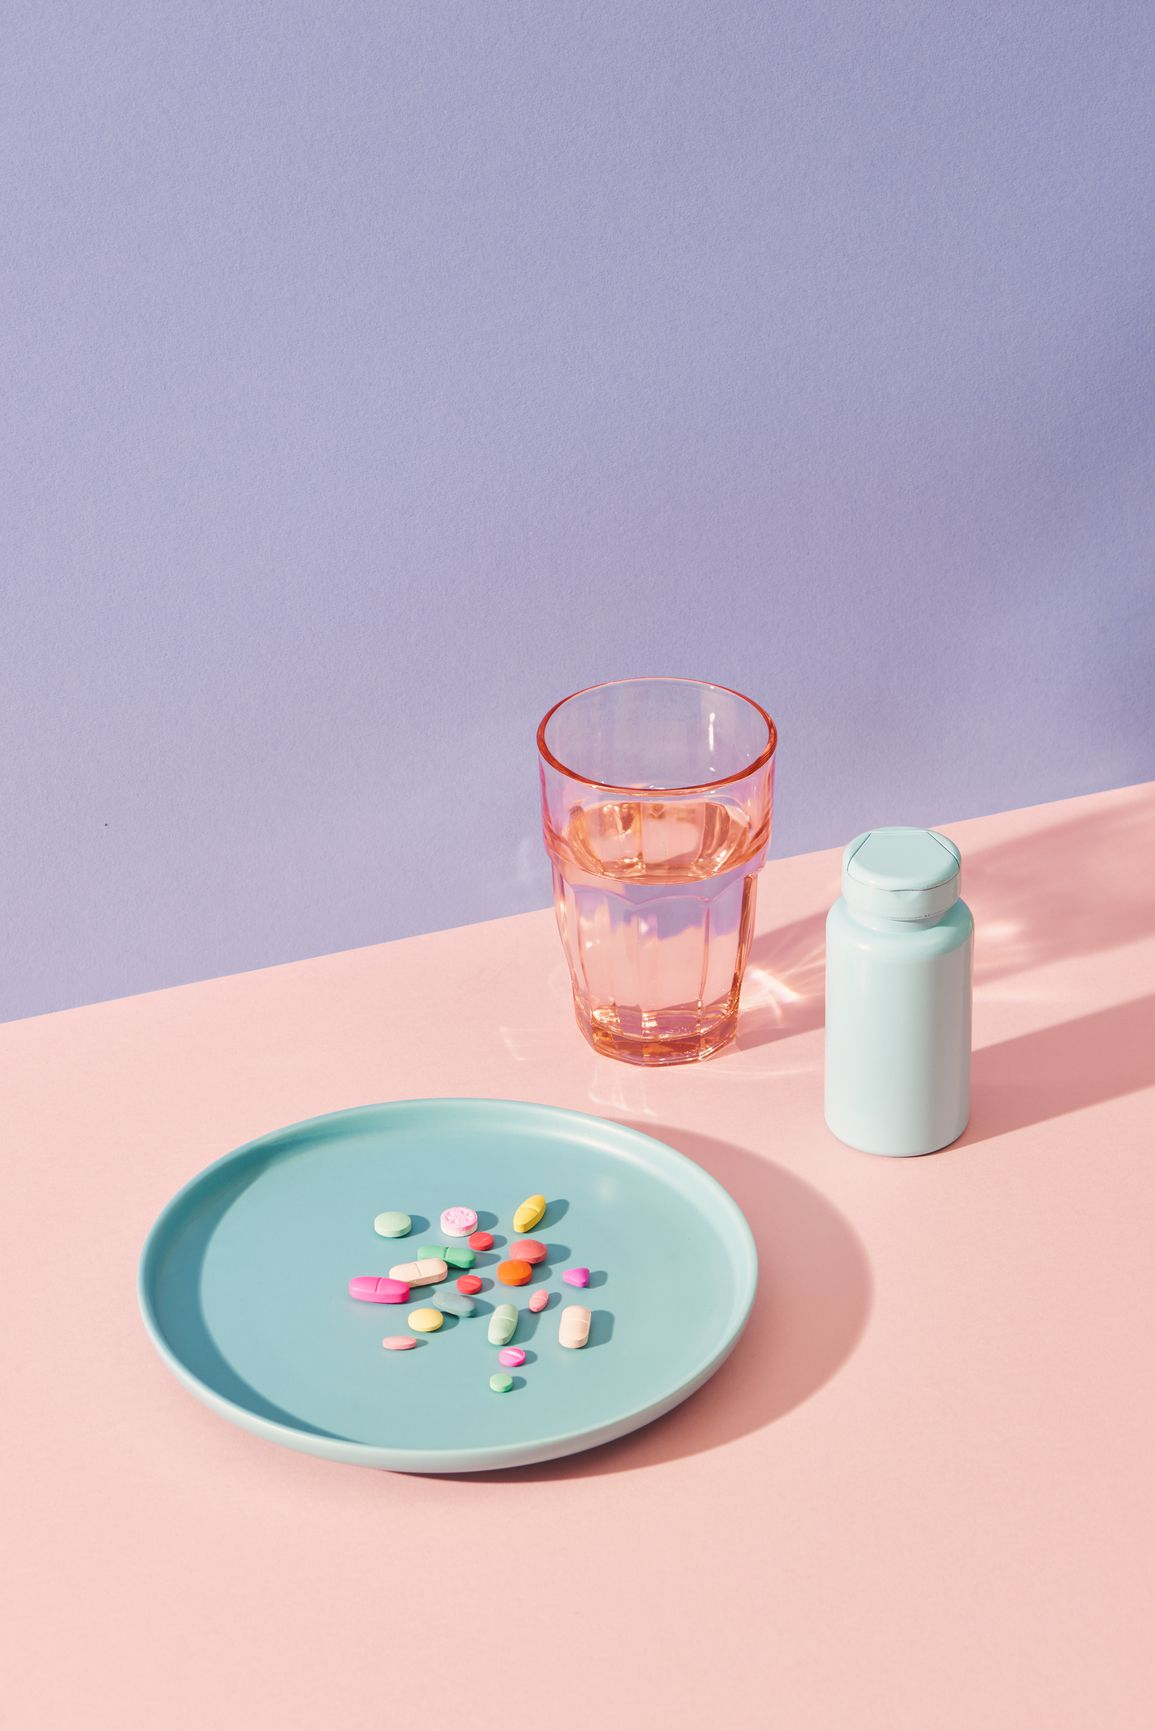 vitamin supplements on table with glass and pill bottle